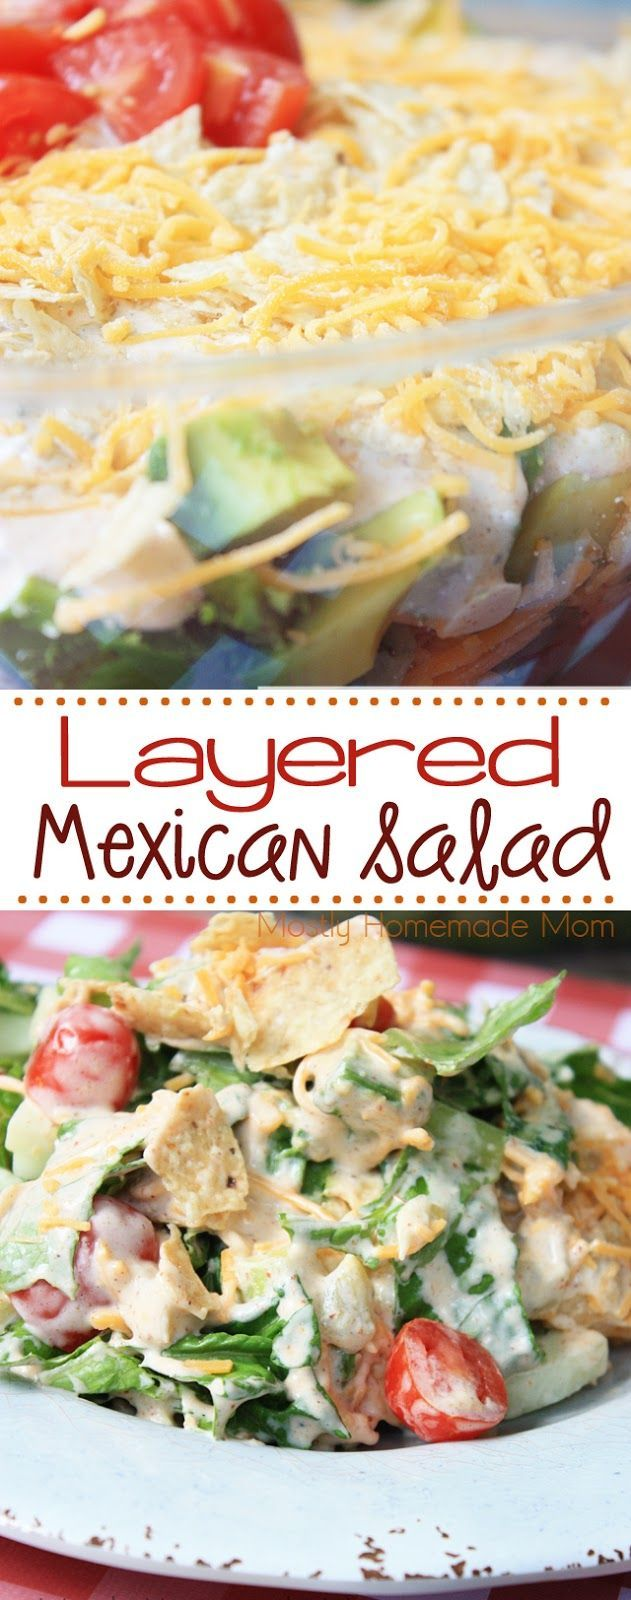 Layered Mexican Salad - Layers of romaine lettuce, cucumber, cherry tomatoes, avocado, cheddar cheese, and crushed tortilla chips in a homemade taco dip dressing - get your family eating those veggies again!